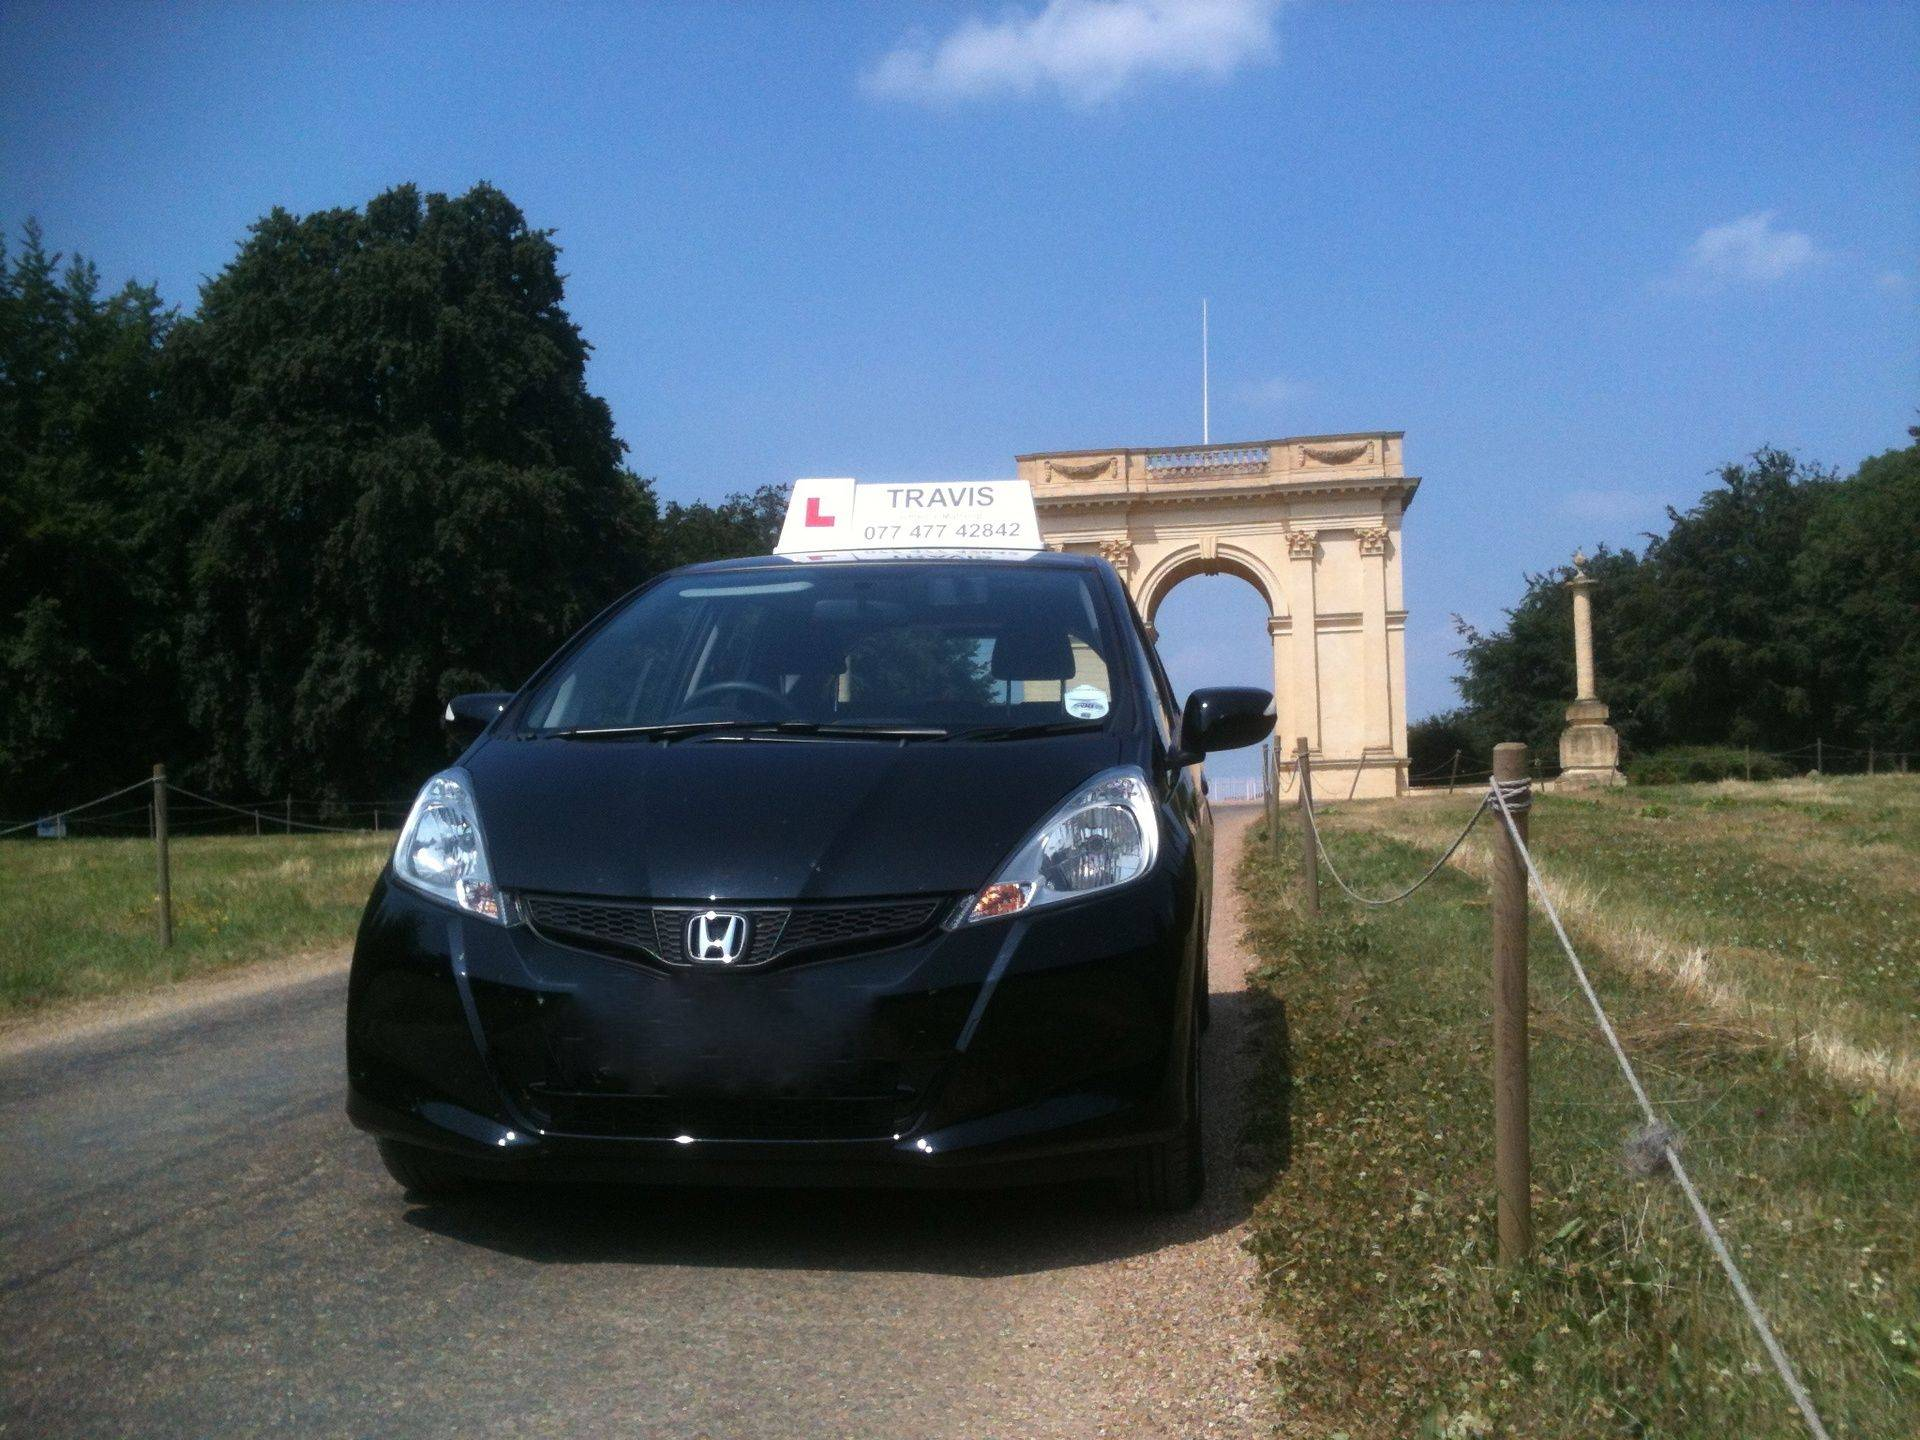 Driving school car.  Driving lessons in Buckingham.